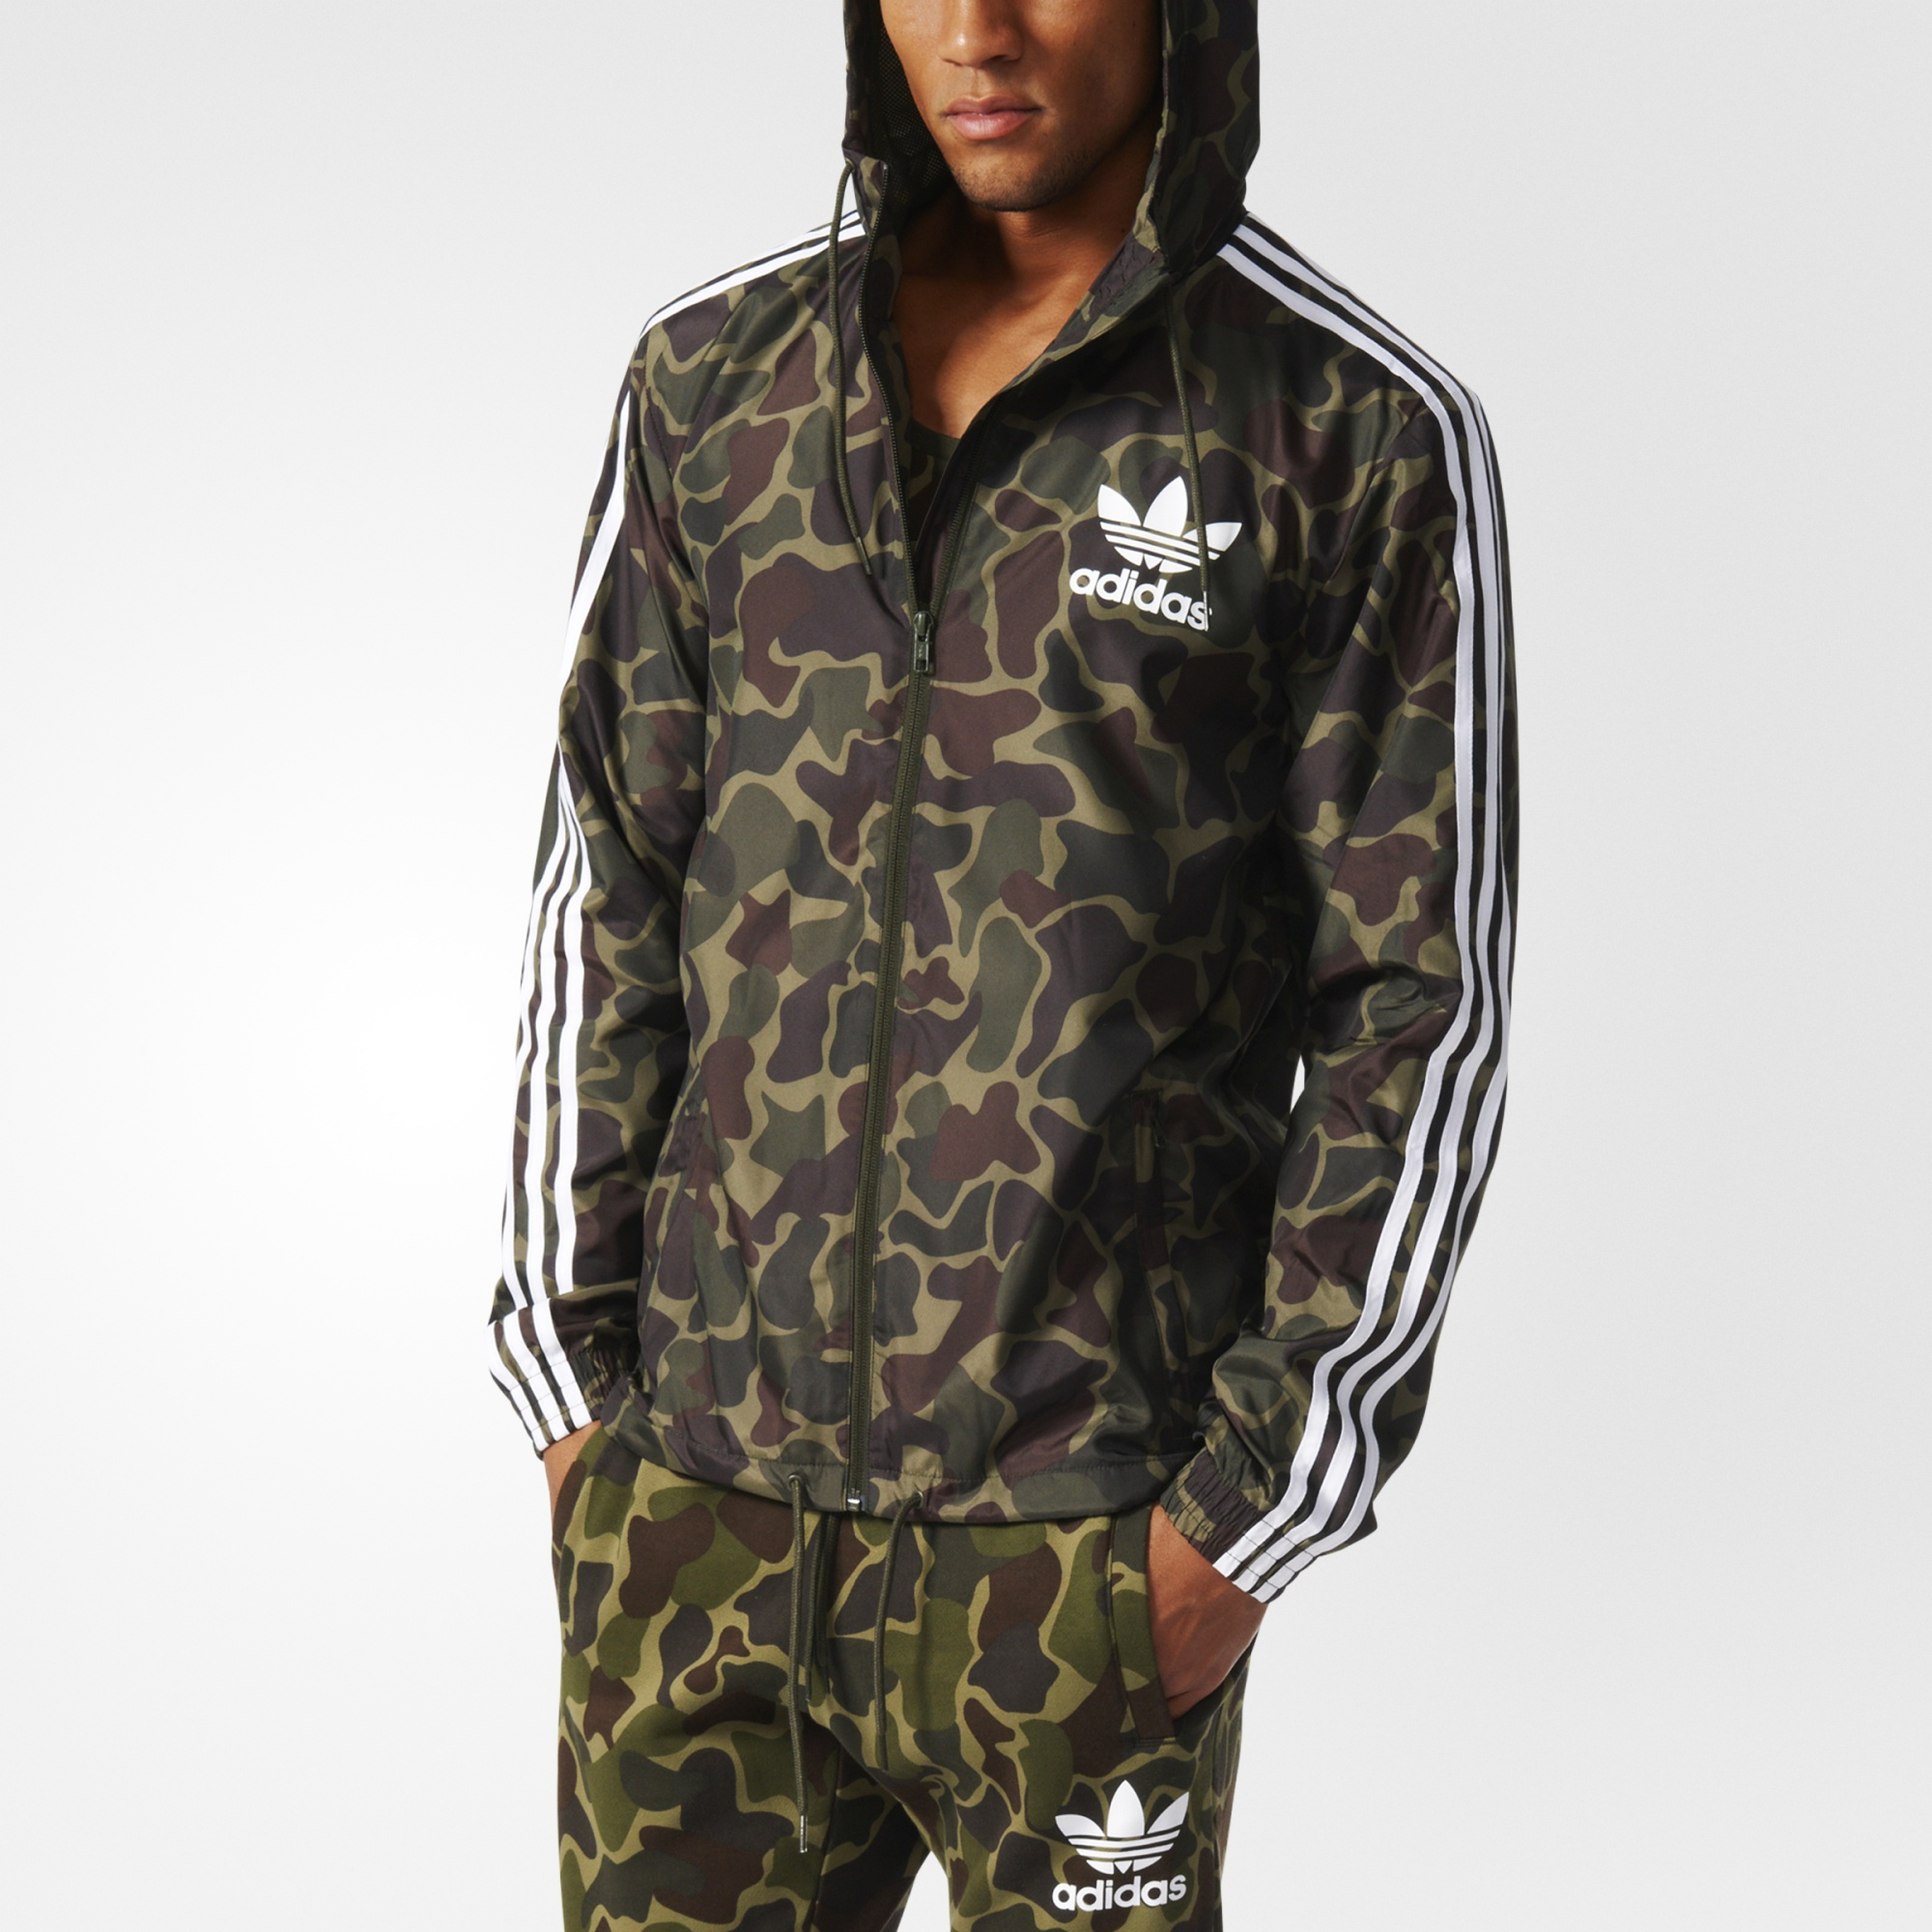 Adidas Originals Camouflage Windbreaker Jacket r L